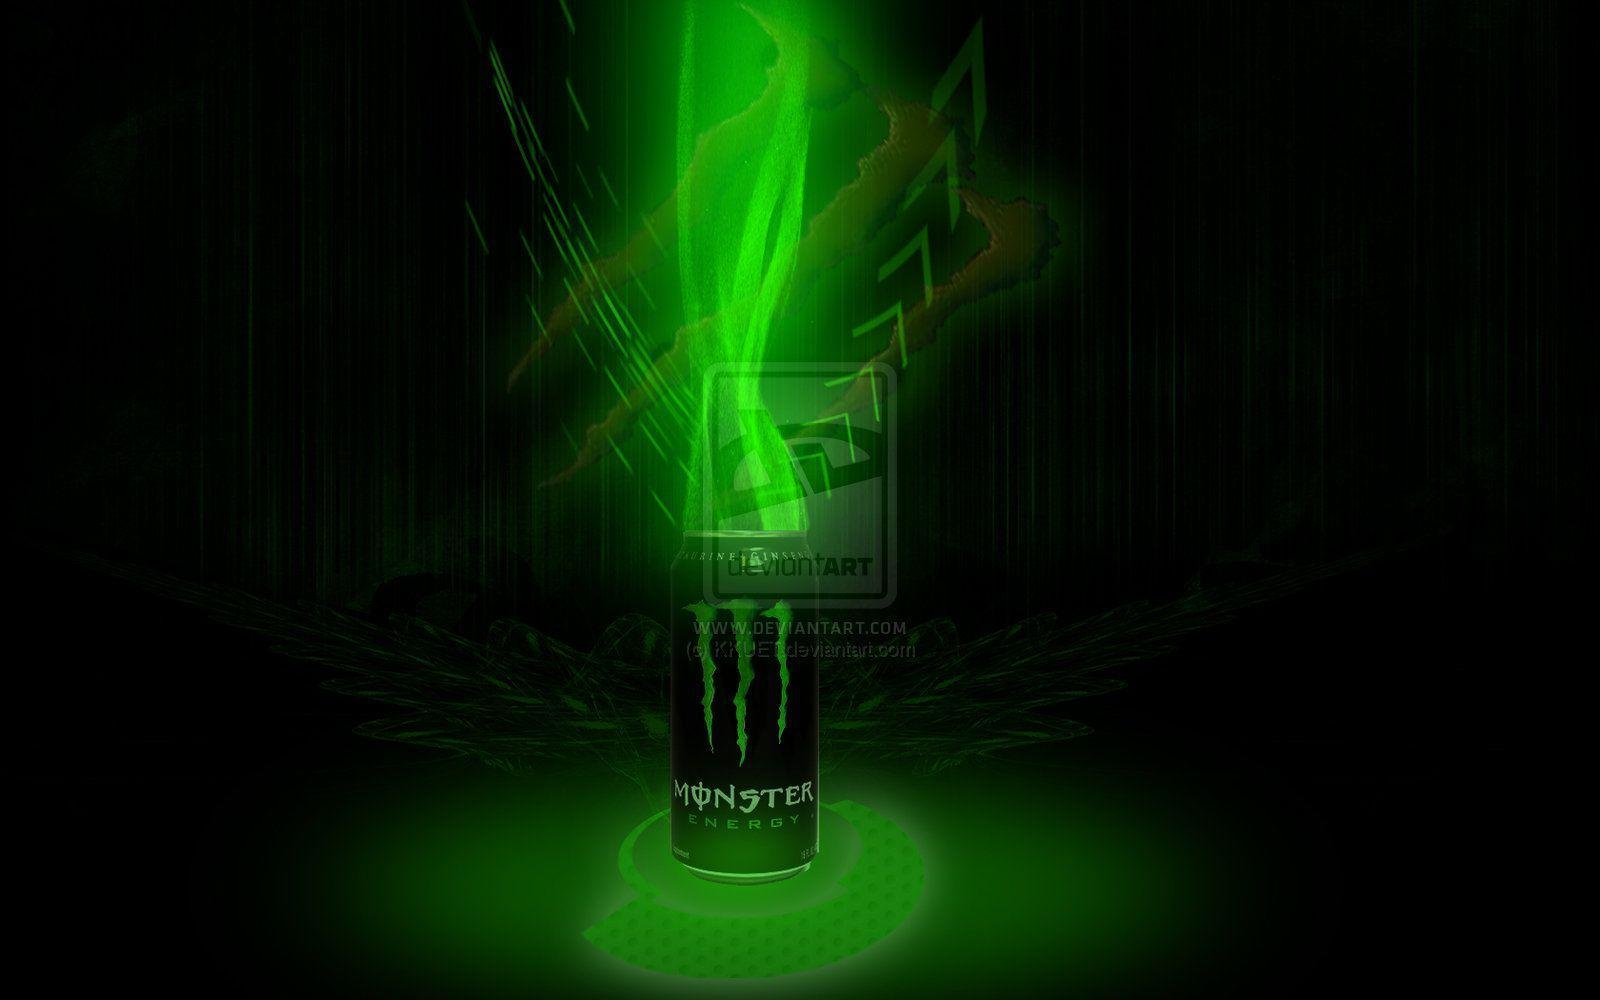 78+ images about monster energy on Pinterest | Monster energy ...